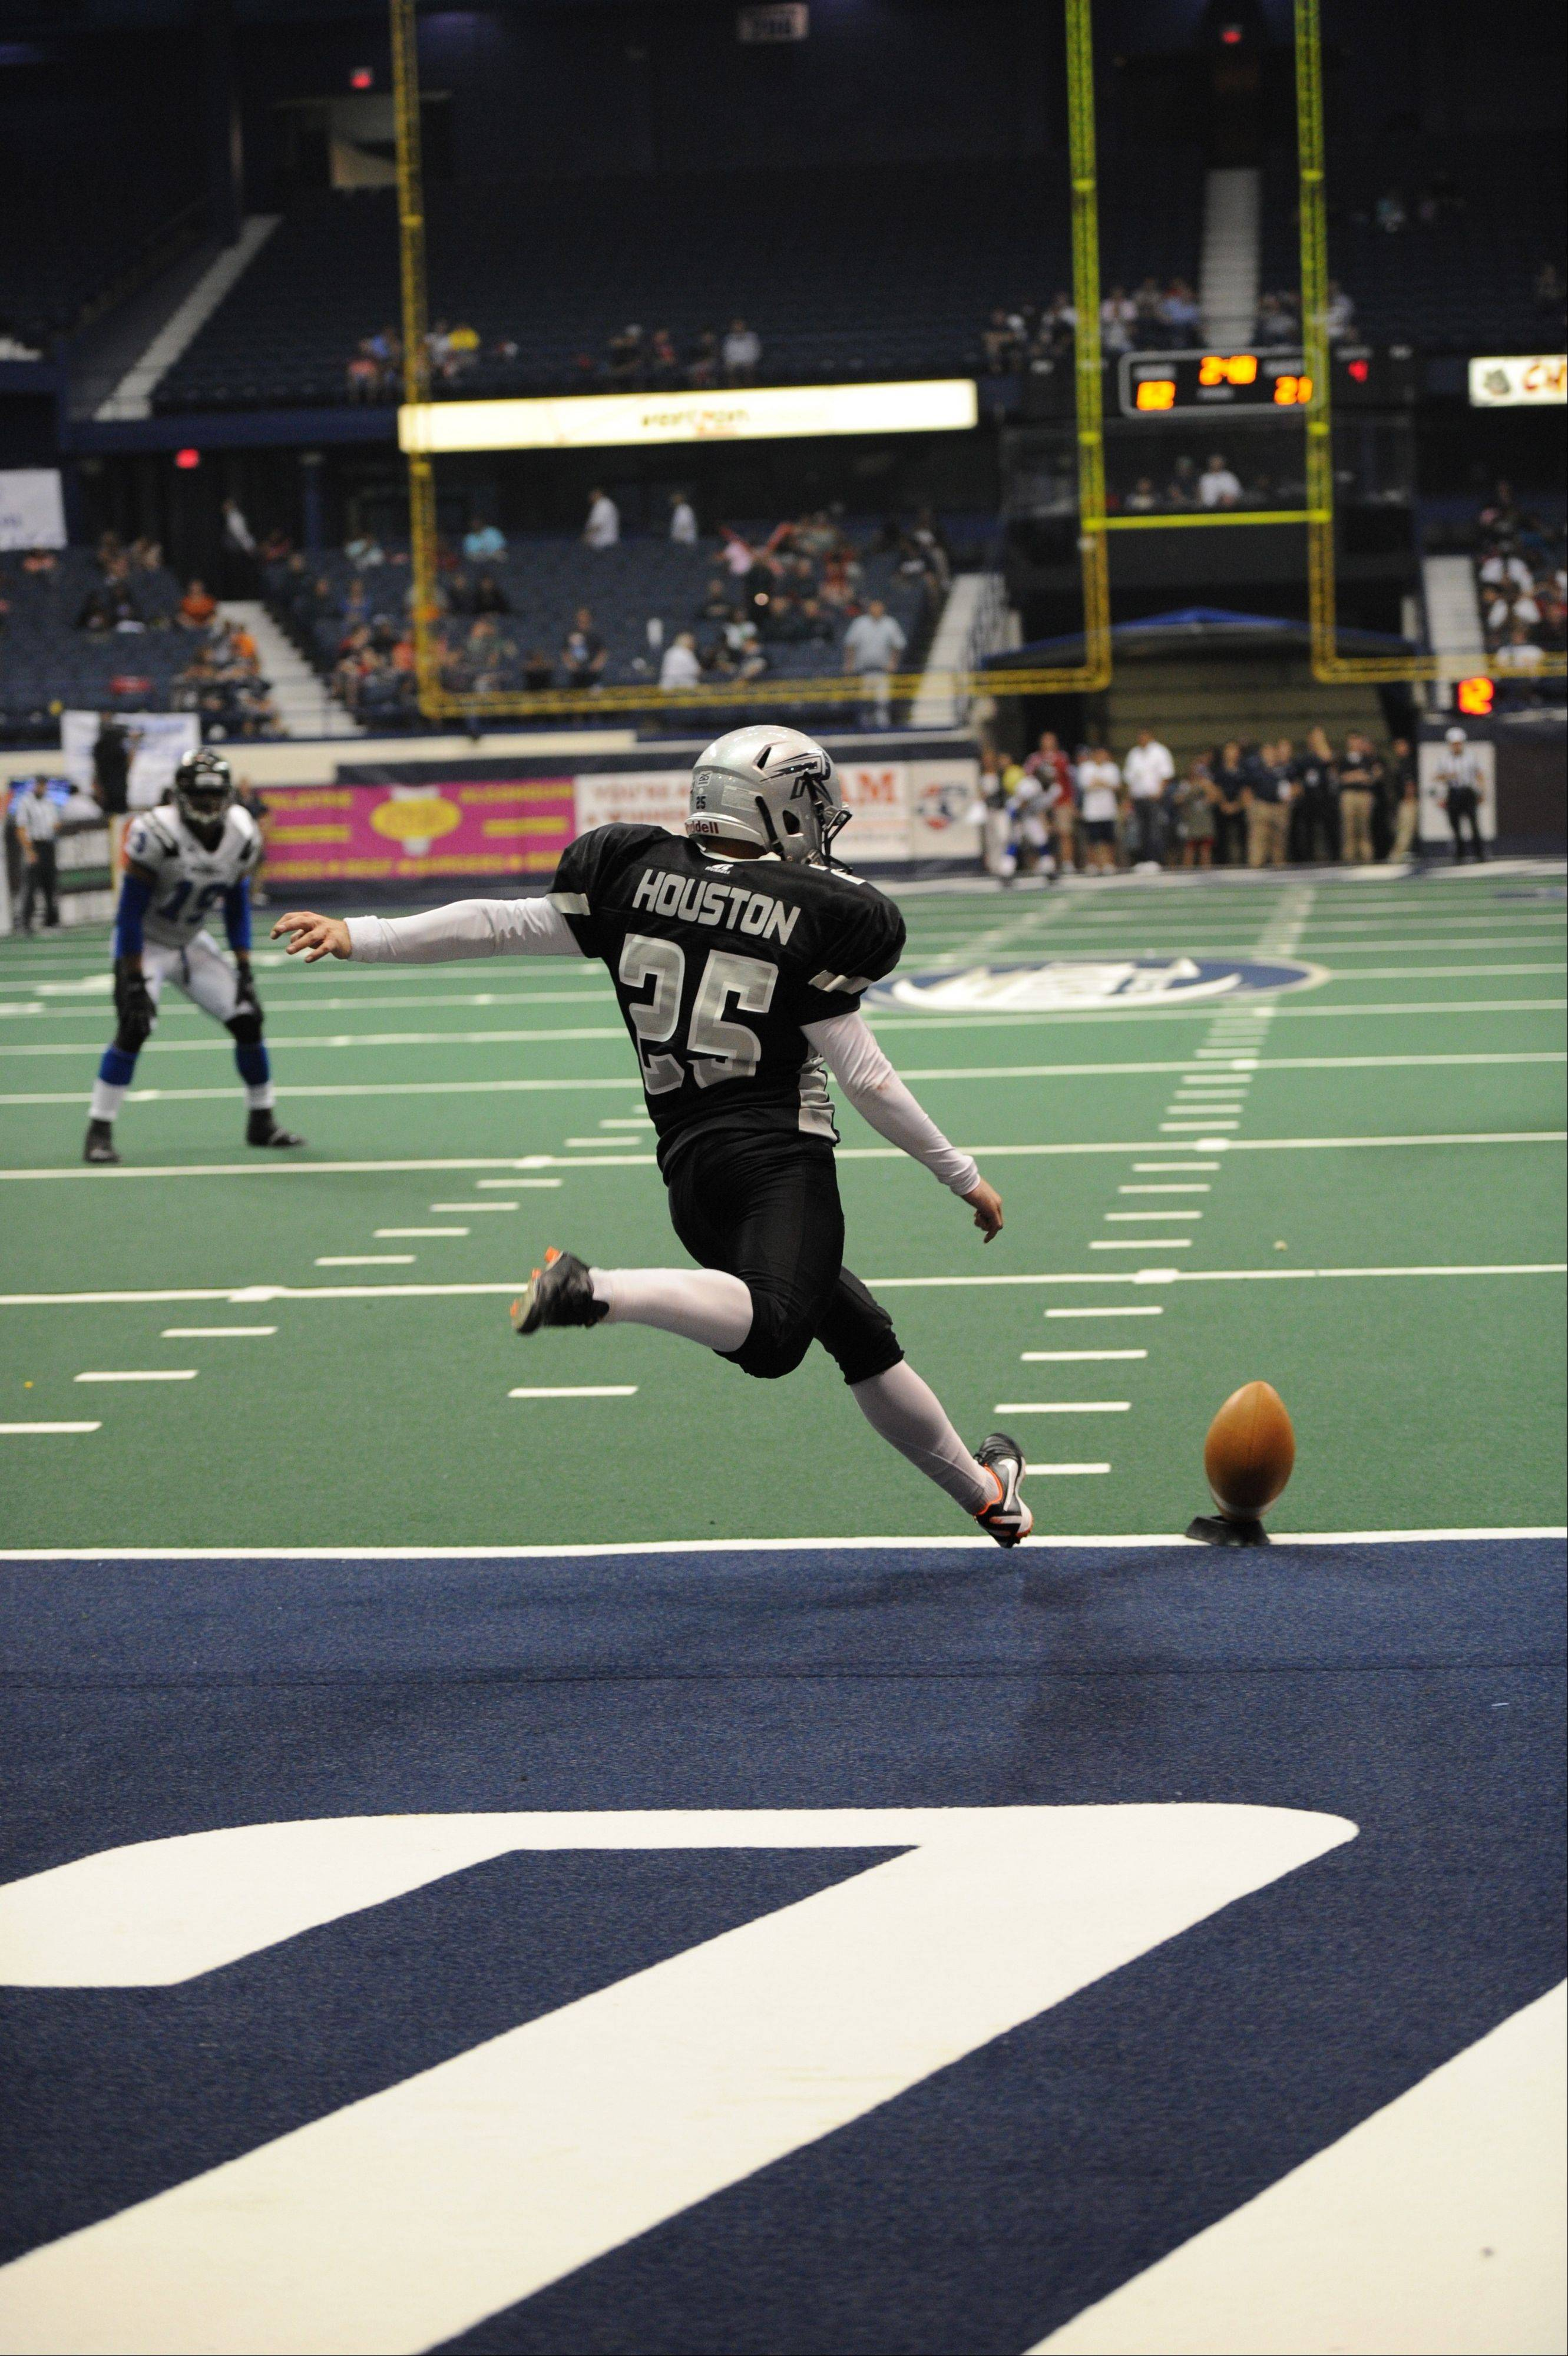 Joe Houston kicks off for the Chicago Rush. The former USC Trojans kicker was assigned to the Rush on May 21.